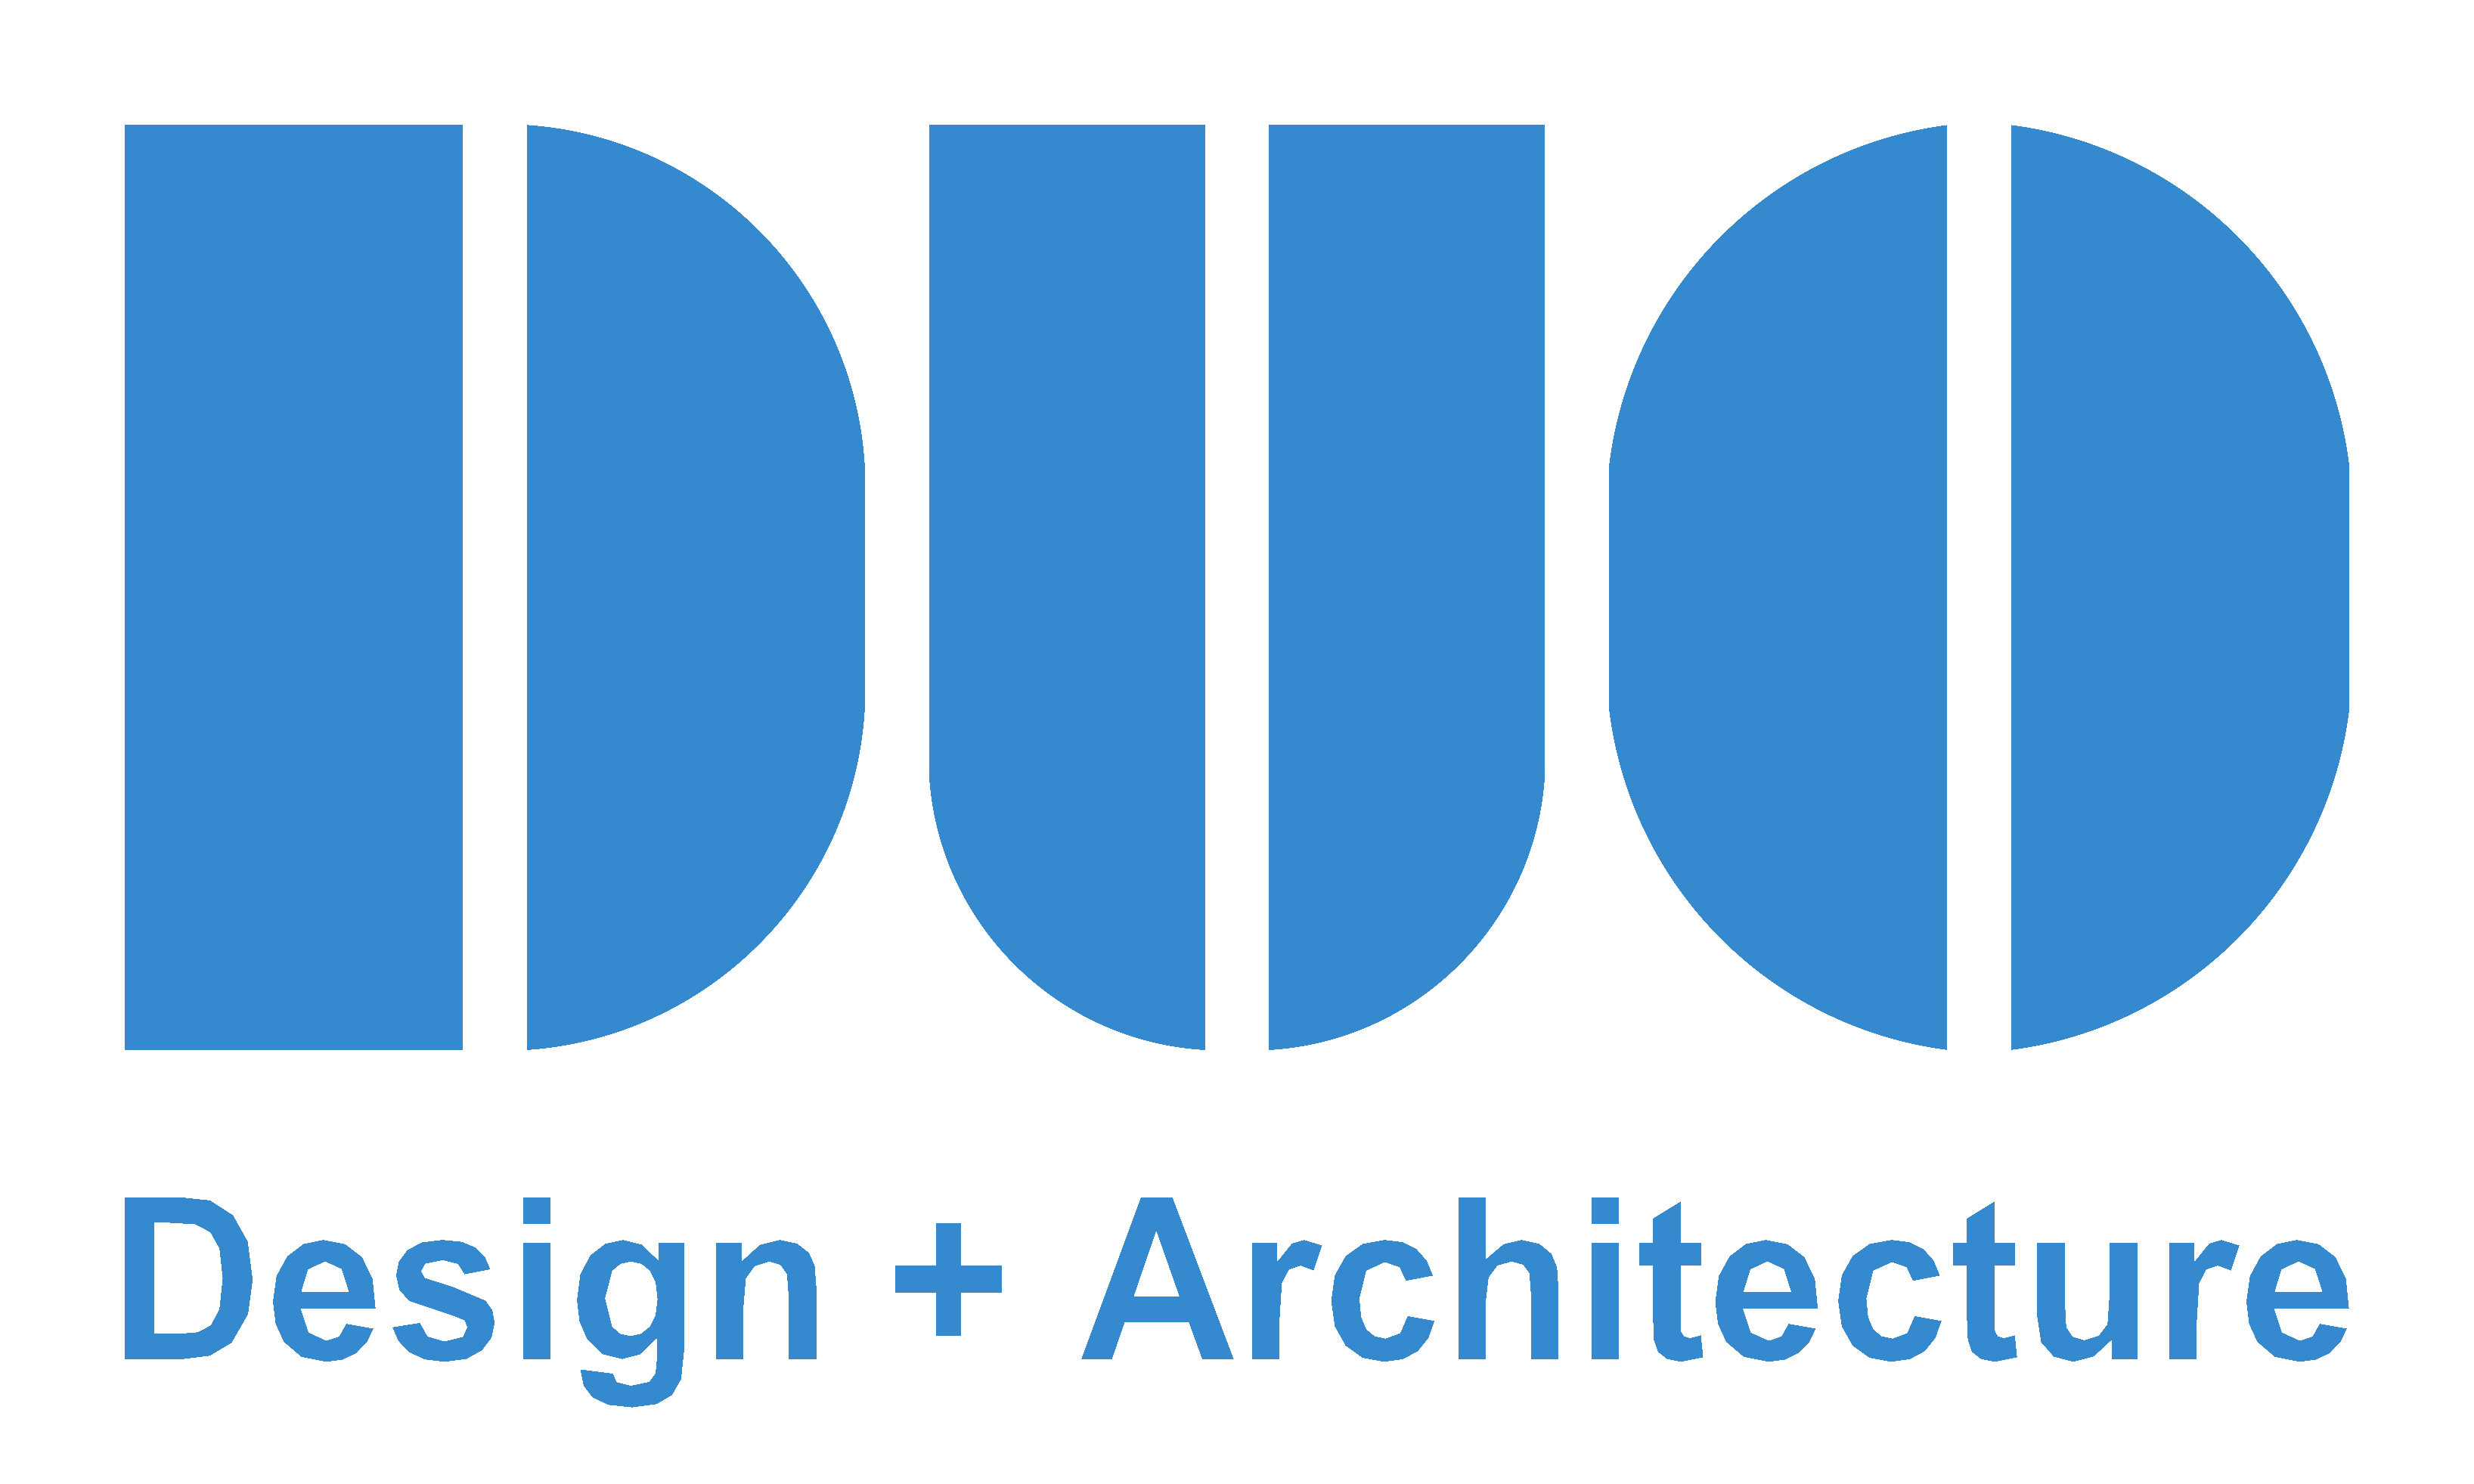 DUO - Design + Architecture